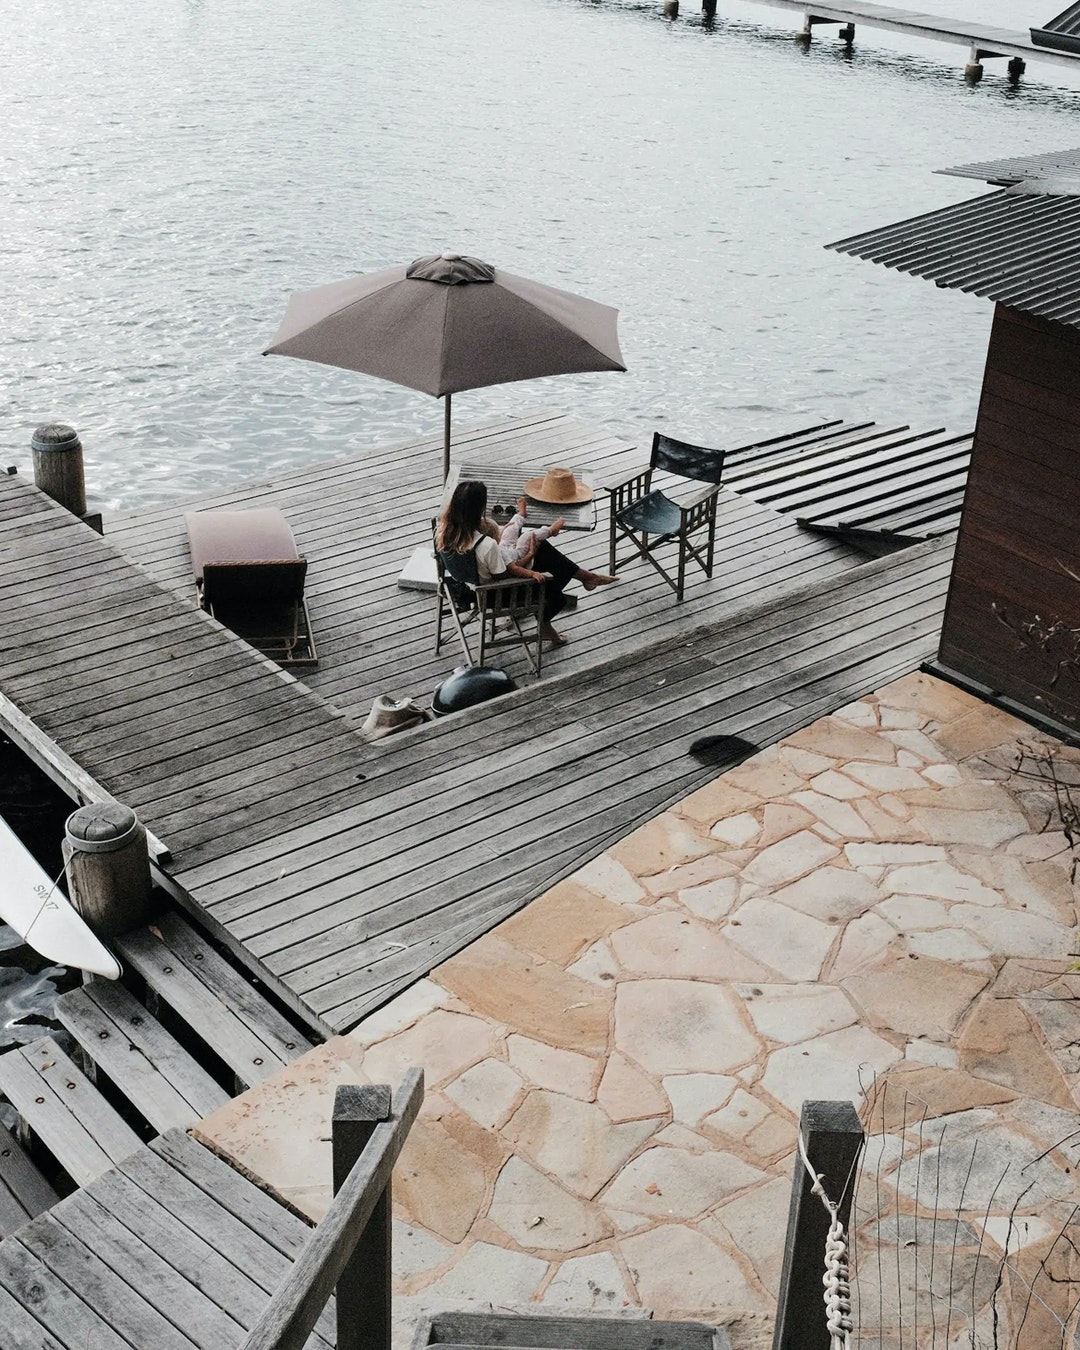 stairway leading down to girl reading on daybed on pontoon